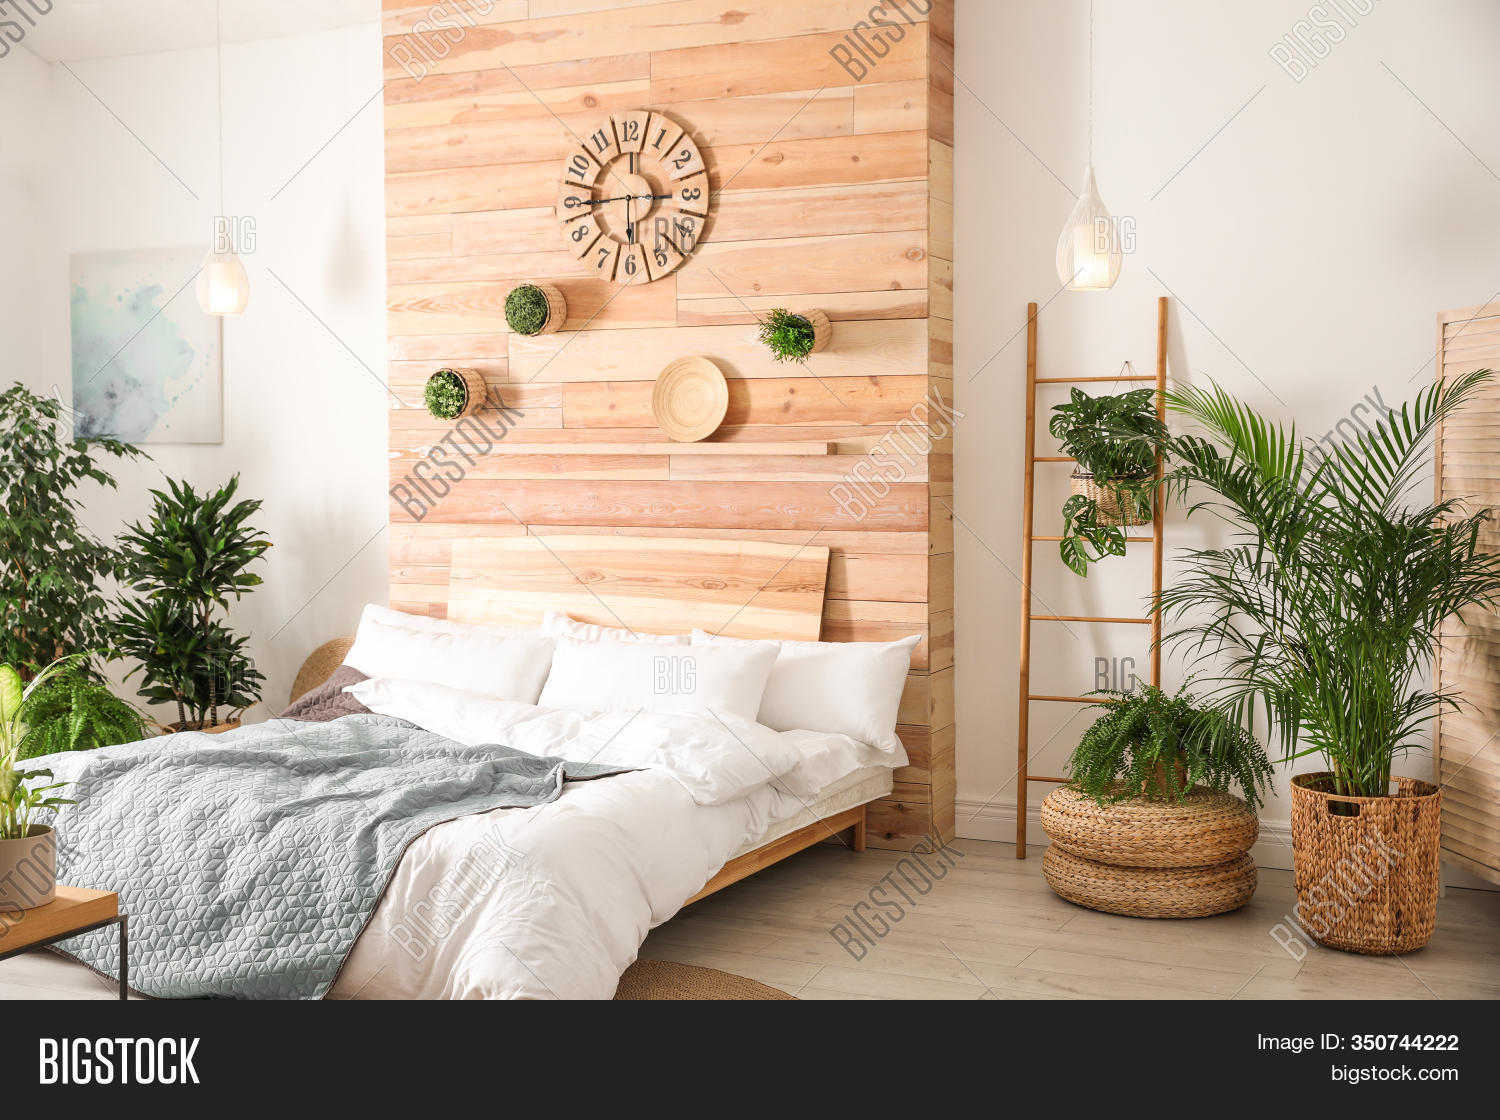 Stylish Bedroom Image Photo Free Trial Bigstock